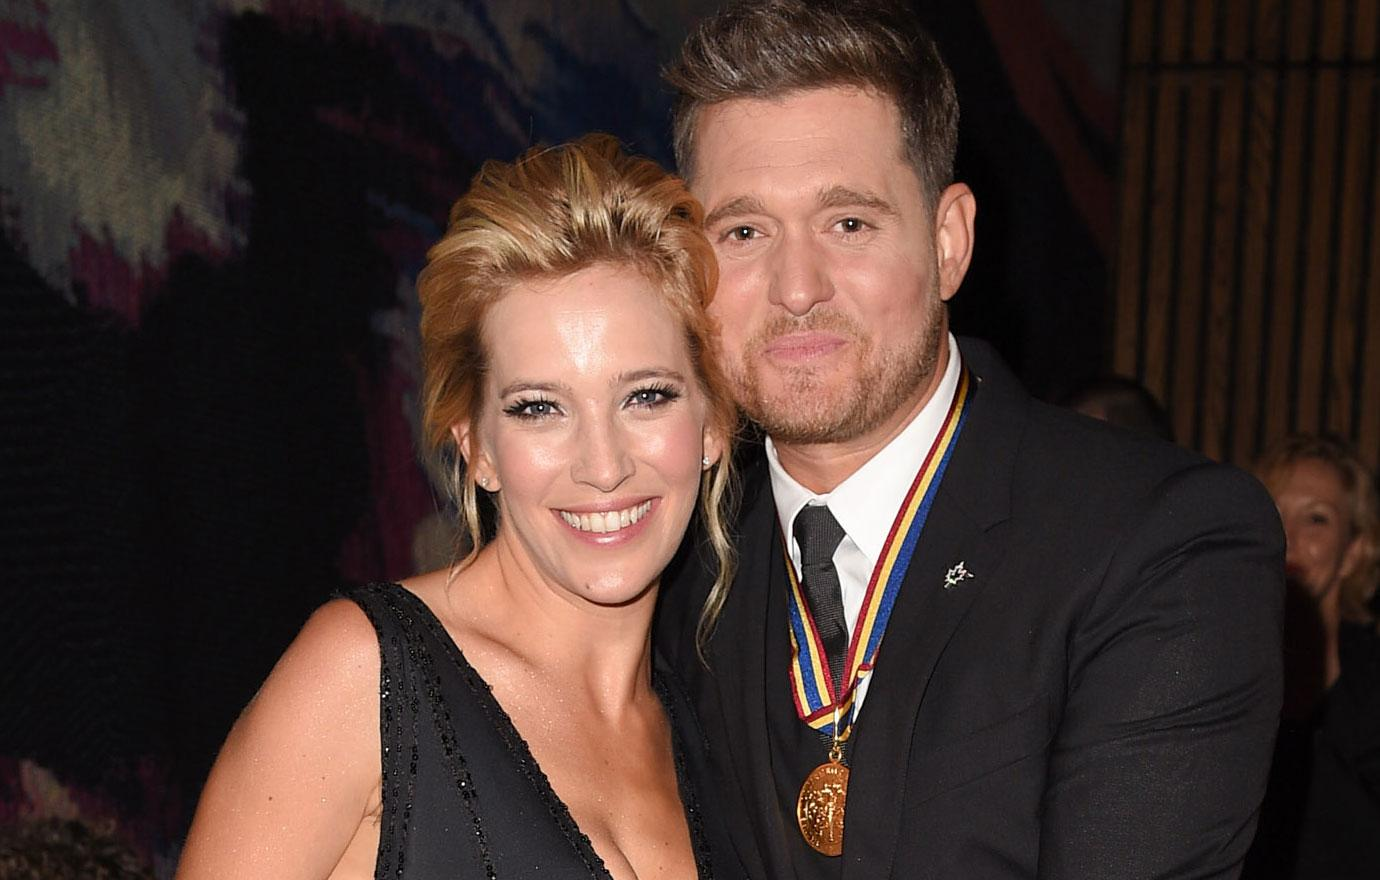 Michael Buble And Wife Expecting Third Child